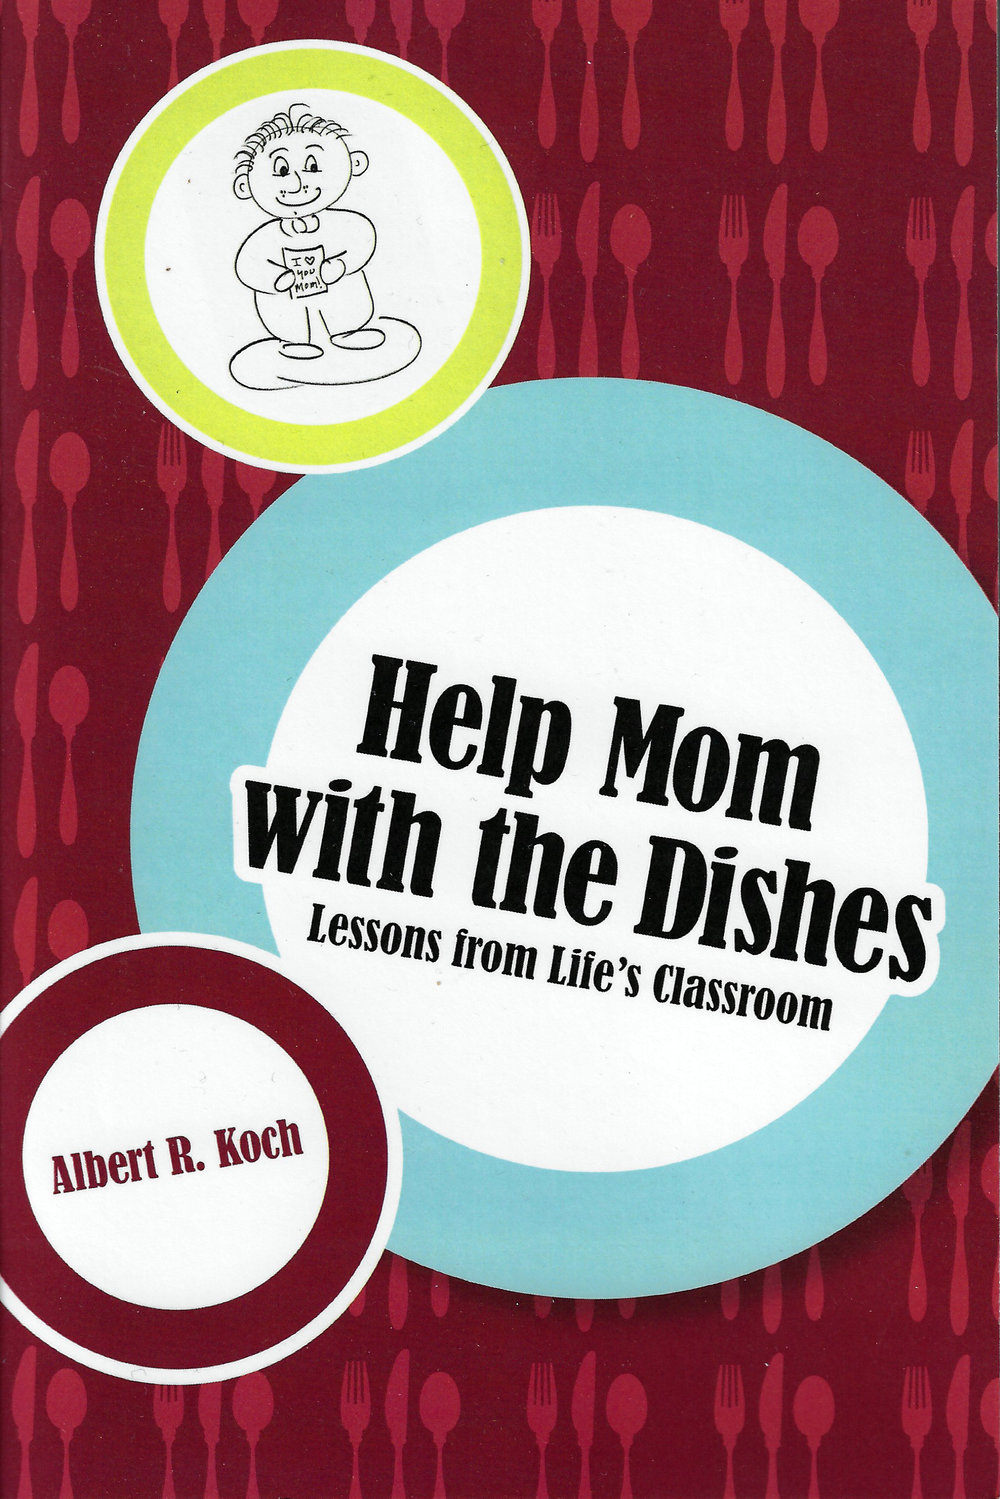 """Help Mom with the Dishes Albert R. Koch 2006  Born and raised in this """"industrial Mayberry,"""" Al Koch relives his experiences in Whiting and beyond through a collection of essays.  Help Mom with the Dishes  is a journey through Koch's life. Over that time, he's learned an important lesson: The triumph over sadness is not easy. It requires an unflinching belief in the goodness of people, a positive sense of humor, and a little faith and reverence for things we cannot see."""